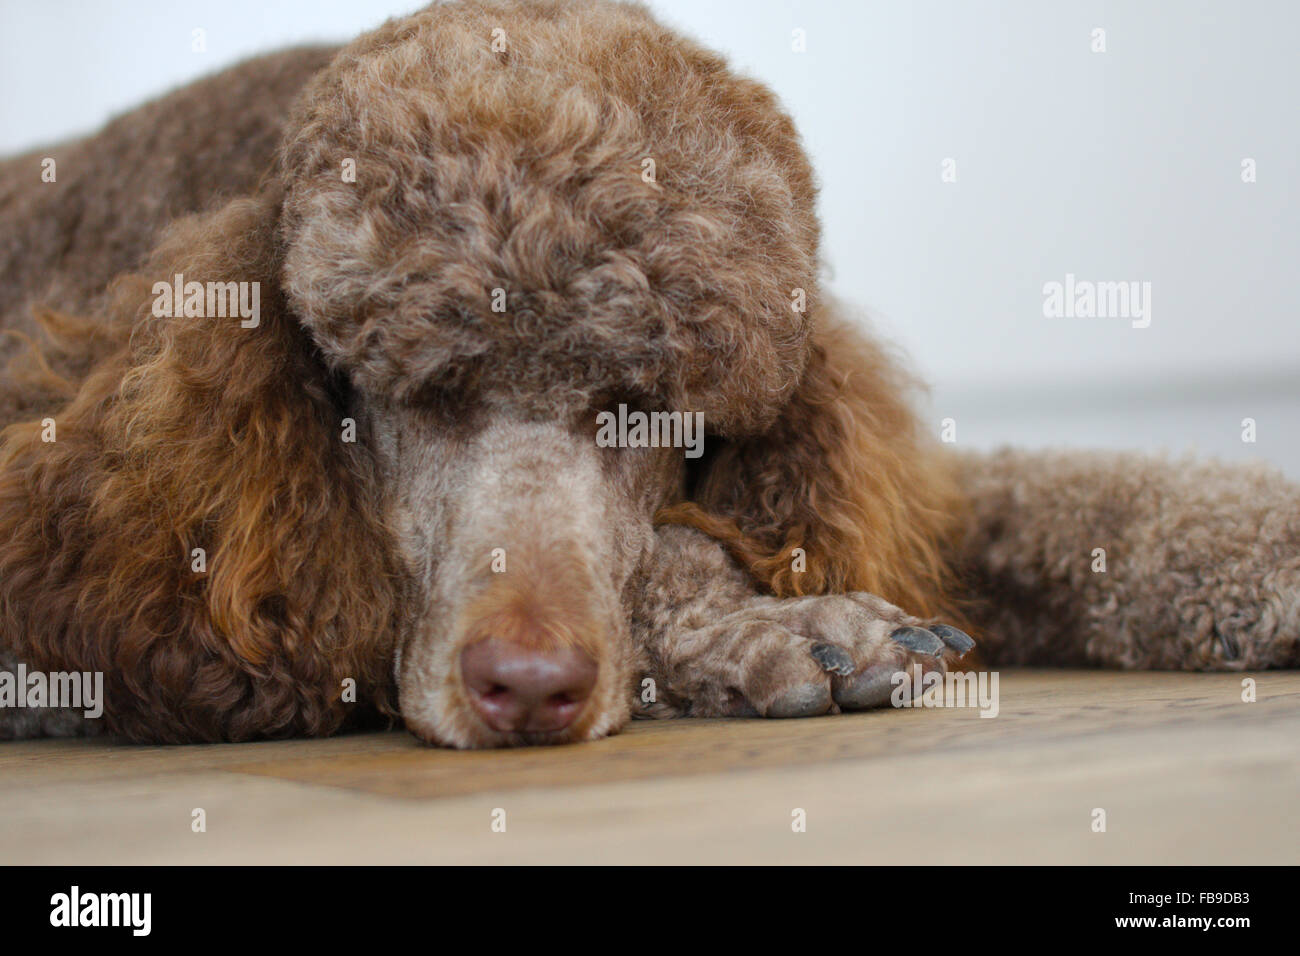 My friend Charlie the standard poodle having a sleep - Stock Image